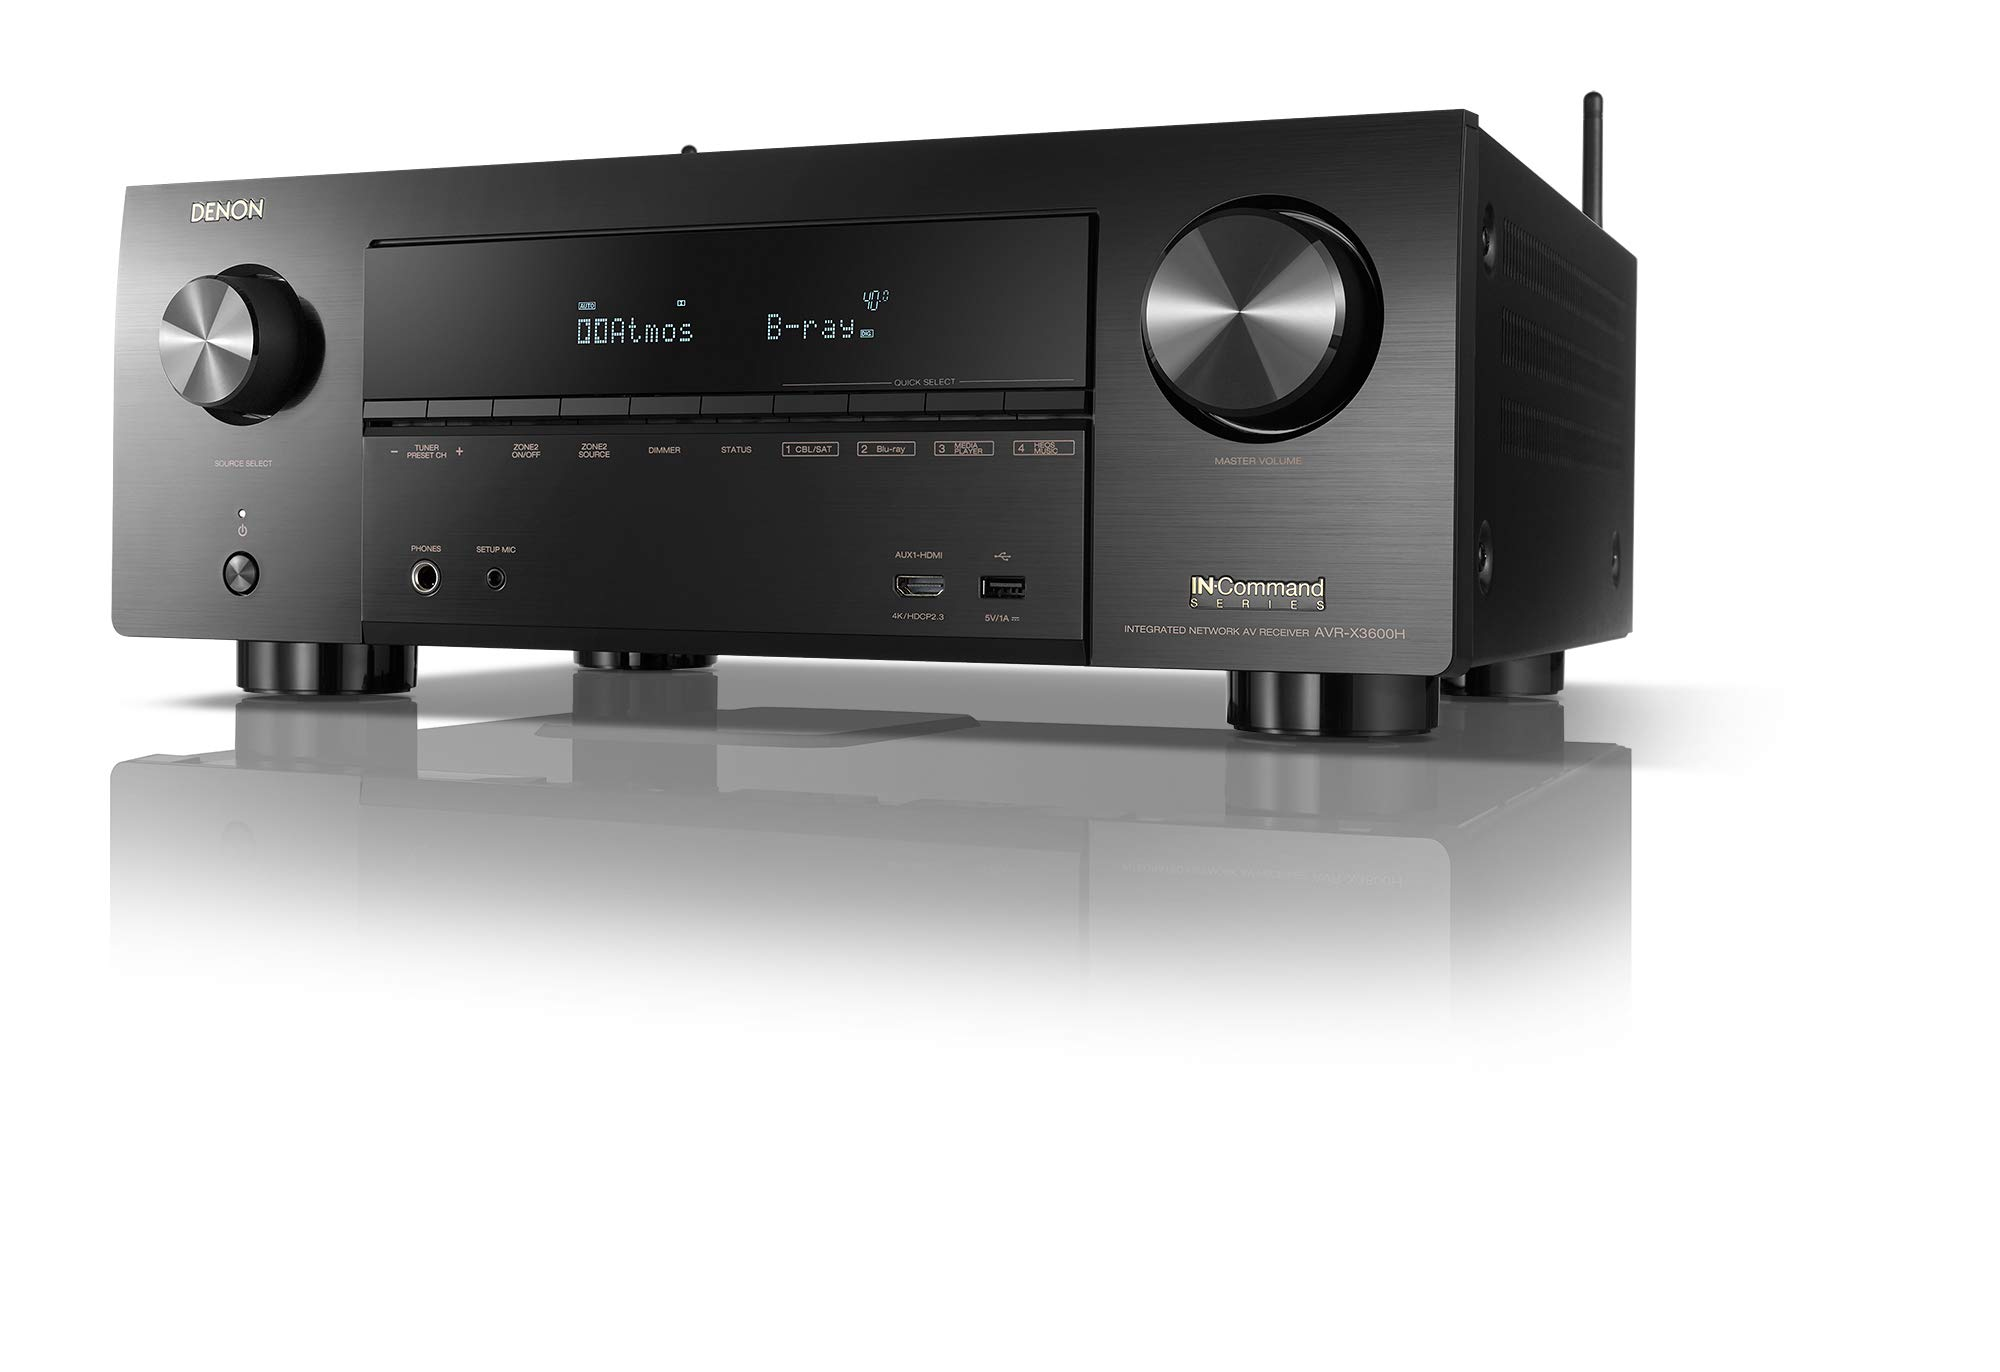 Denon AVR-X3600H 9.2CH 4K AV Receiver with 3D Audio and Heos Built-in